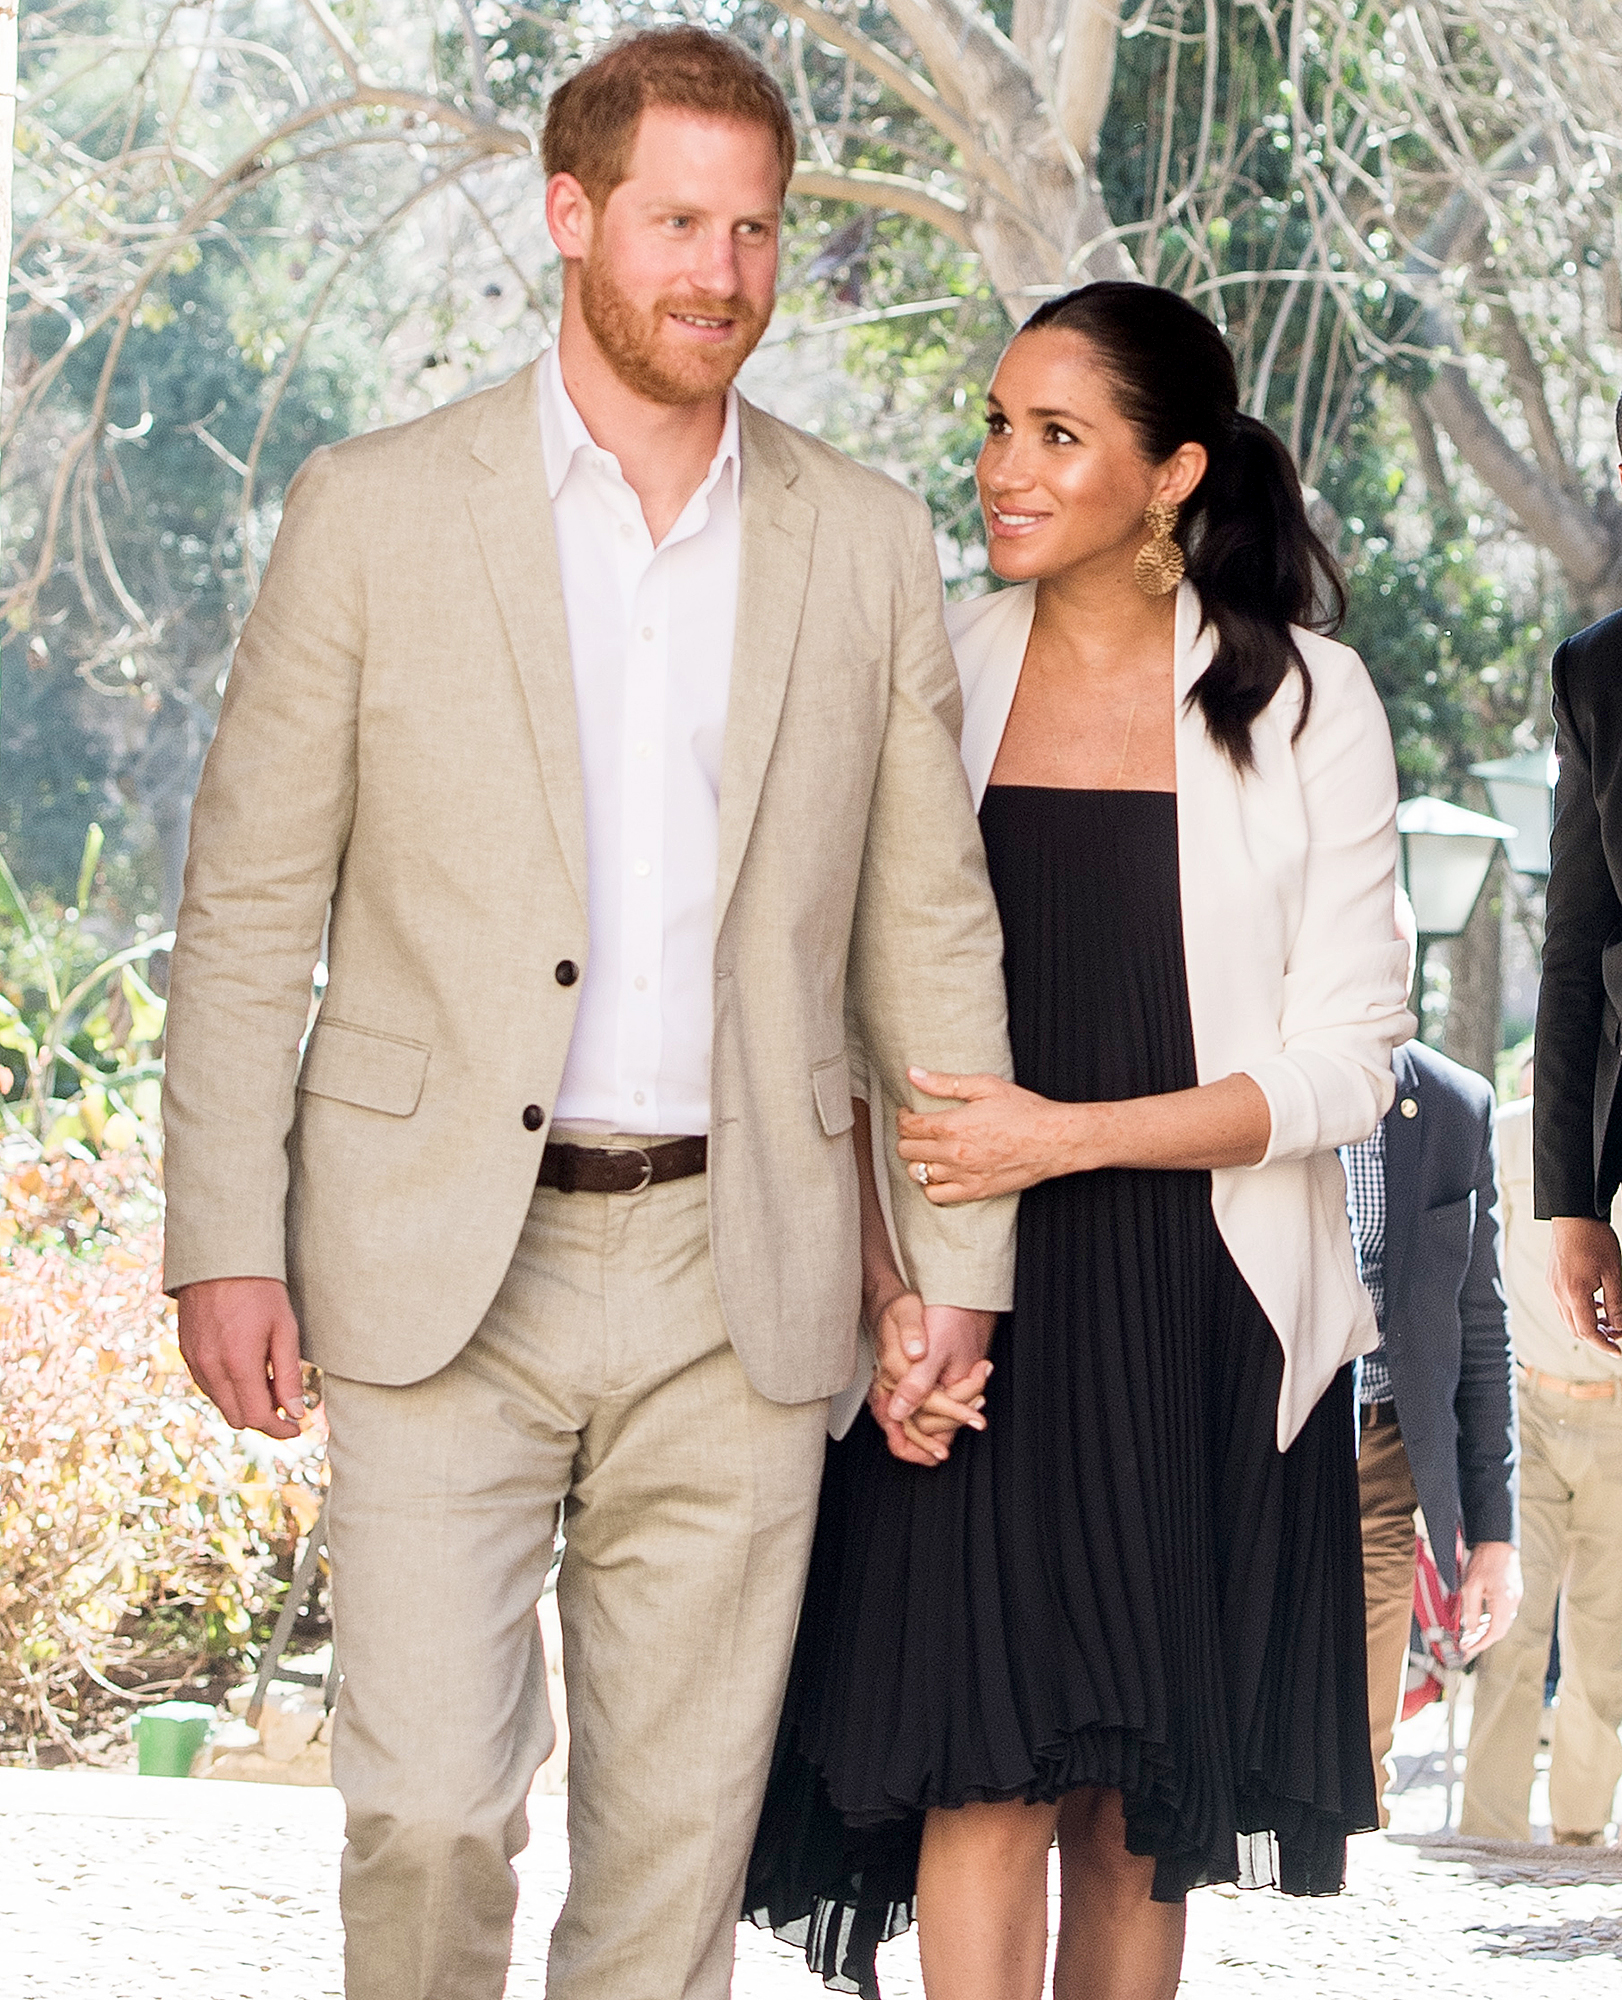 """duchess-meghan-prince-harry-moved-into-Frogmore-Cottage - The duke and duchess moved into Frogmore Cottage in Windsor, England, on April 3. """"The trucks finished delivering the final furniture and home items on Monday, and [Wednesday] was their first night in the cottage,"""" a source told Us Weekly exclusively."""